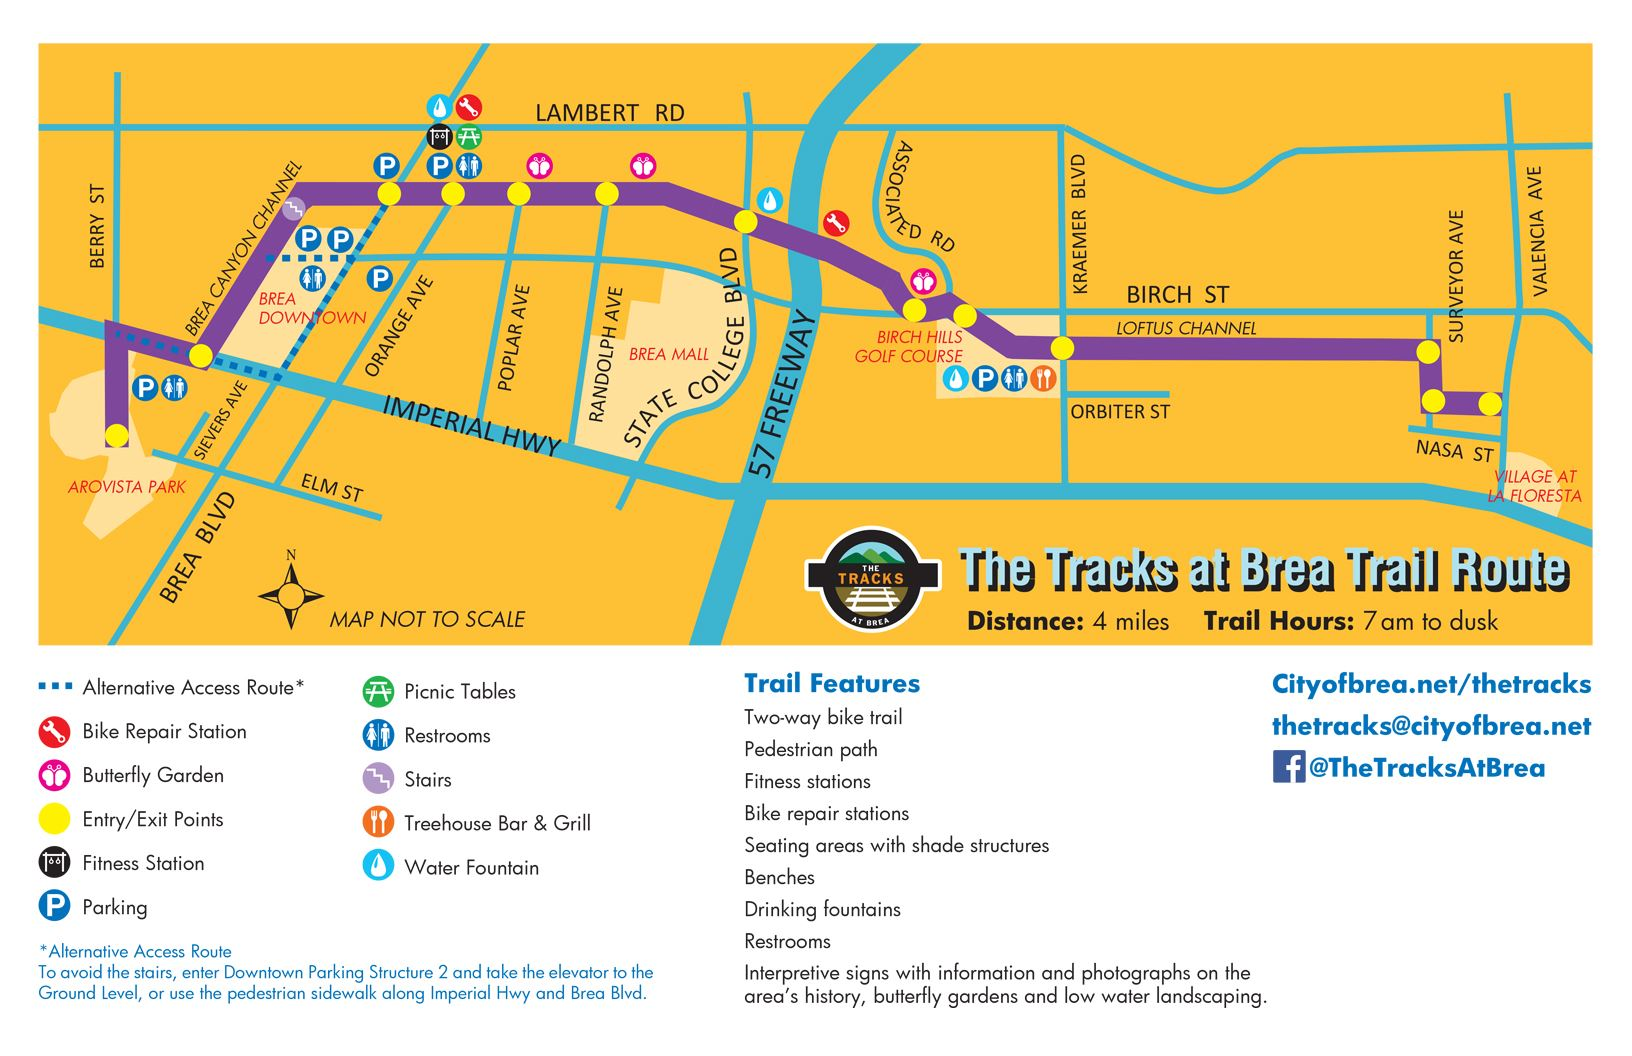 The Tracks Map